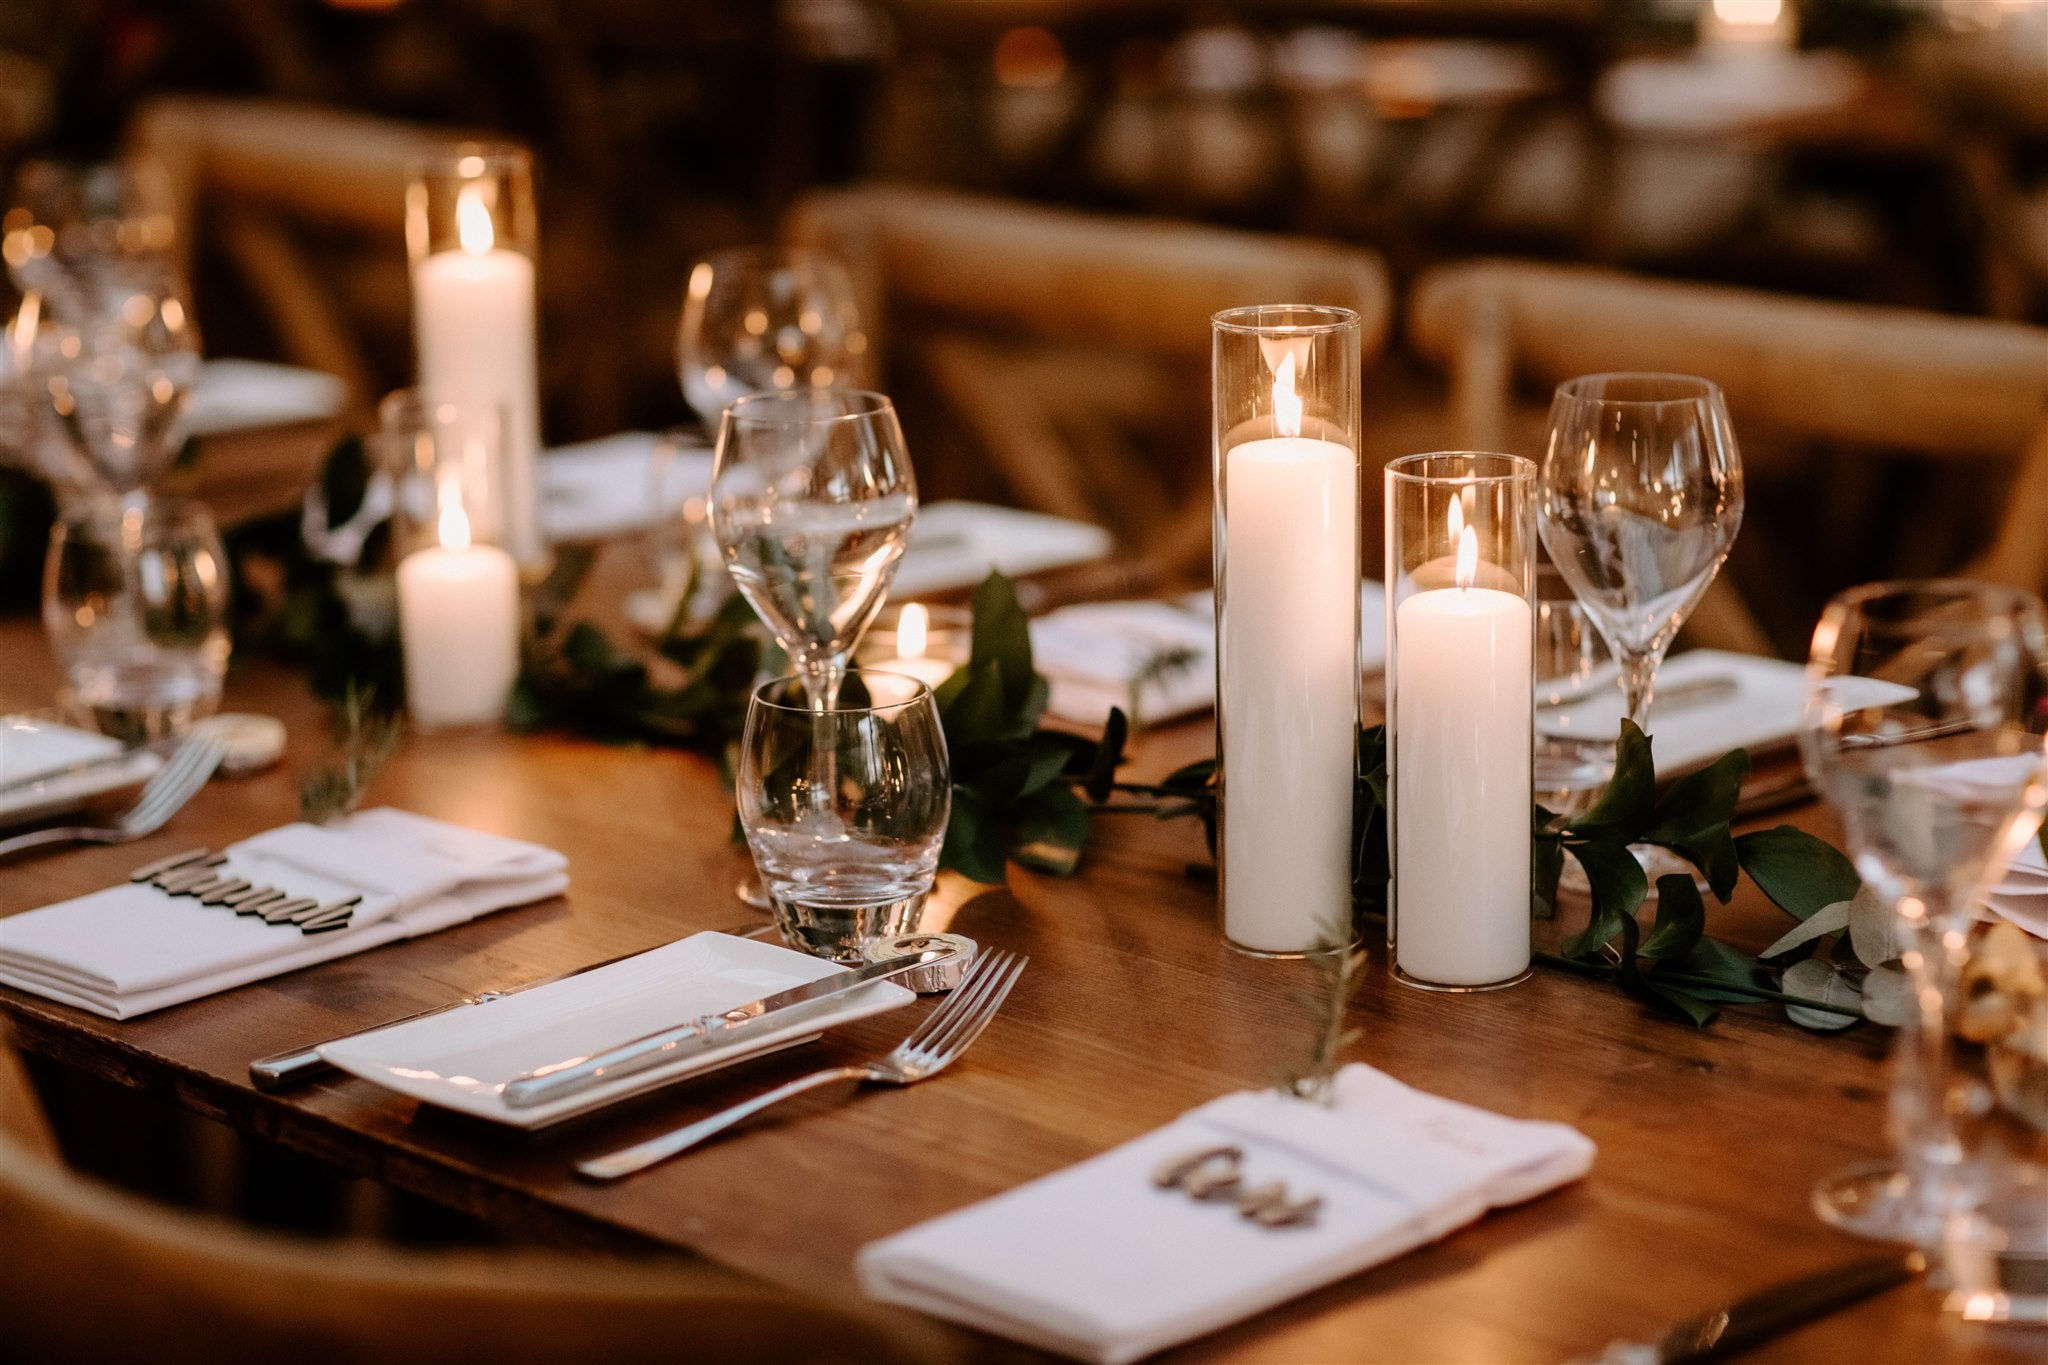 Wedding table set with candles, greenery and napkins